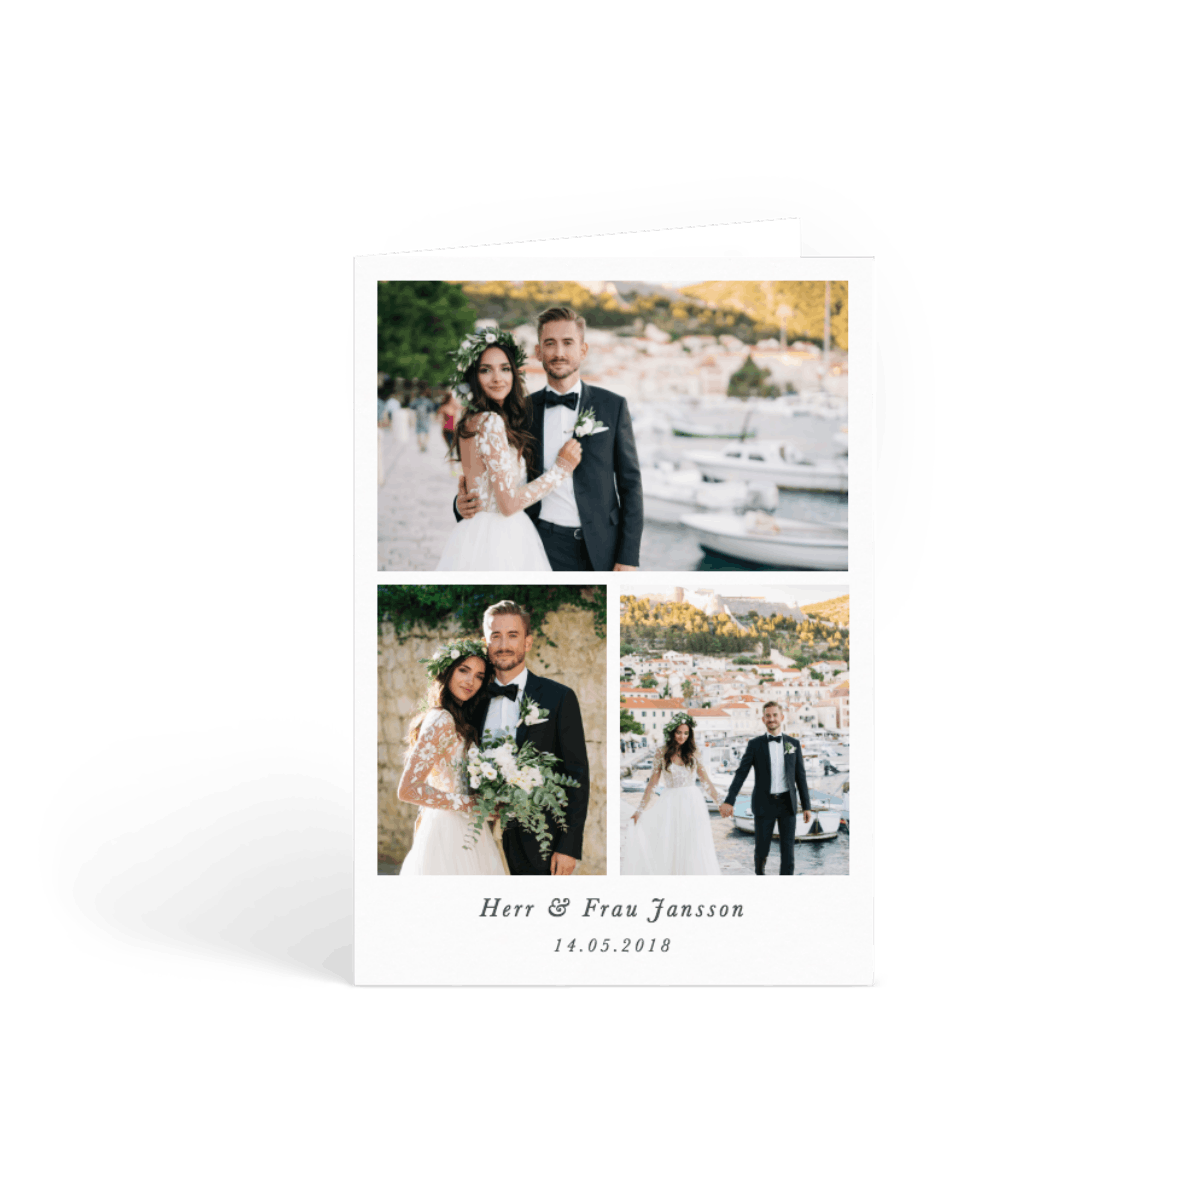 Https%3a%2f%2fwww.papier.com%2fproduct image%2f43976%2f2%2fportrait wedding triptych 6338 vorderseite 1534765883.png?ixlib=rb 1.1